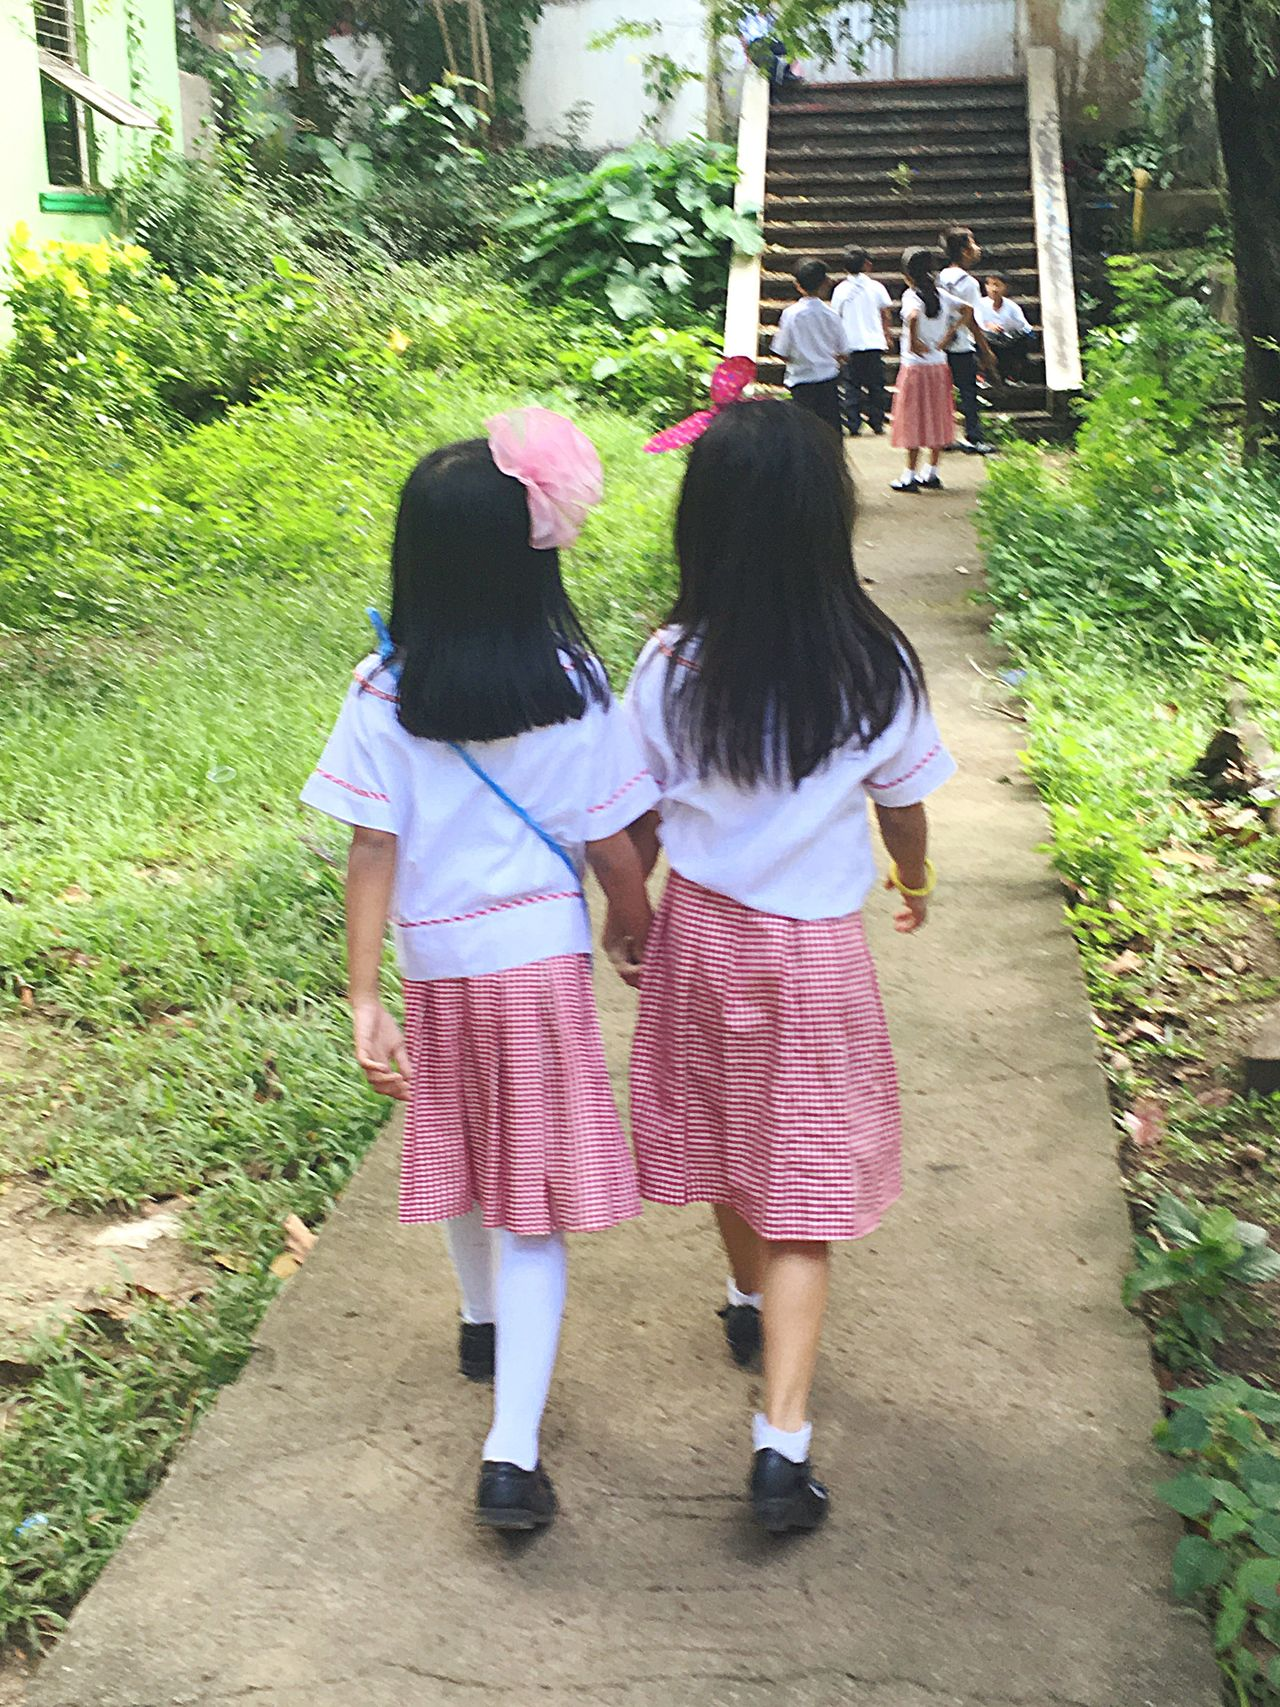 Best friends Rear View Full Length Real People Girls Walking Lifestyles Child Togetherness Childhood Leisure Activity Outdoors Friendship Day People School Public Pathways White Checkered